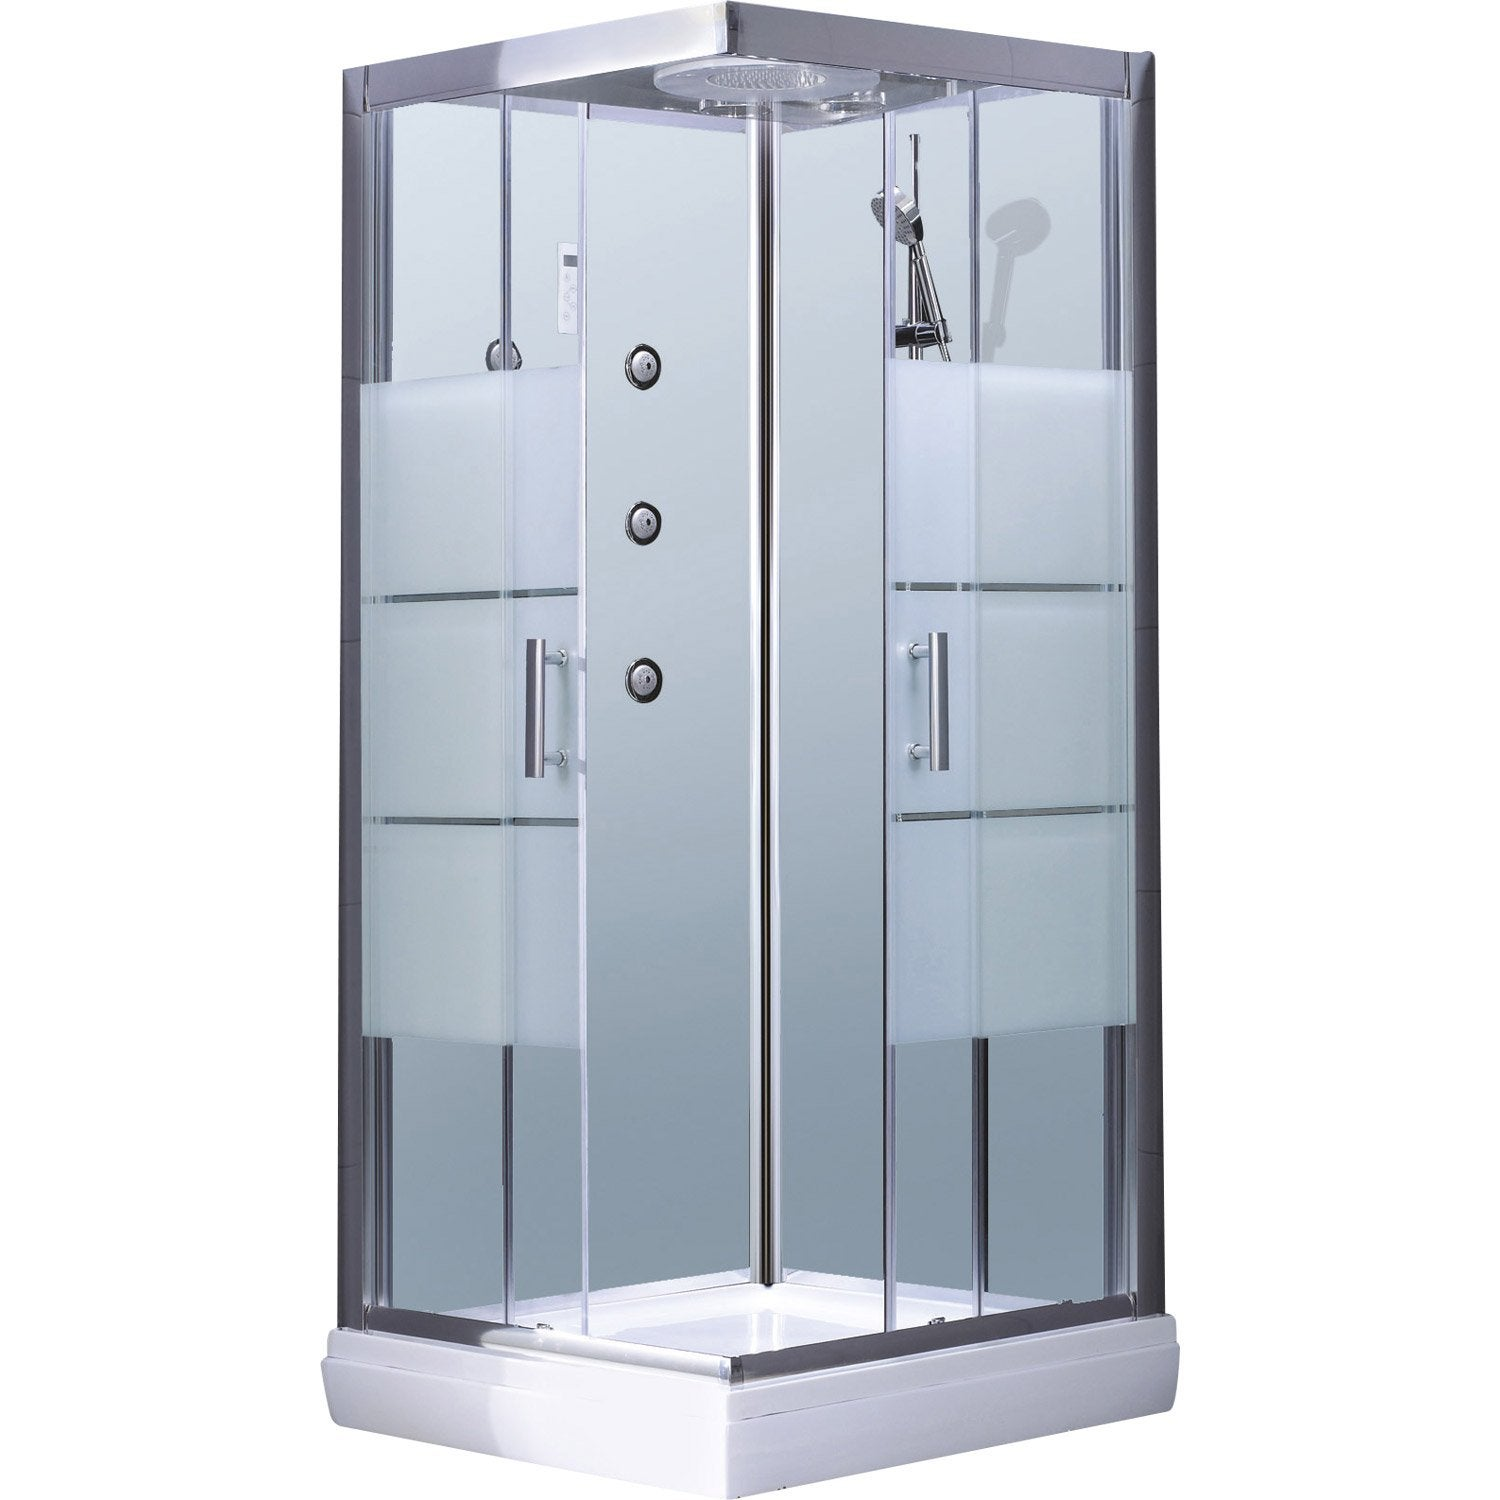 cabine de douche carr 90x90 cm optima2 blanche leroy merlin. Black Bedroom Furniture Sets. Home Design Ideas